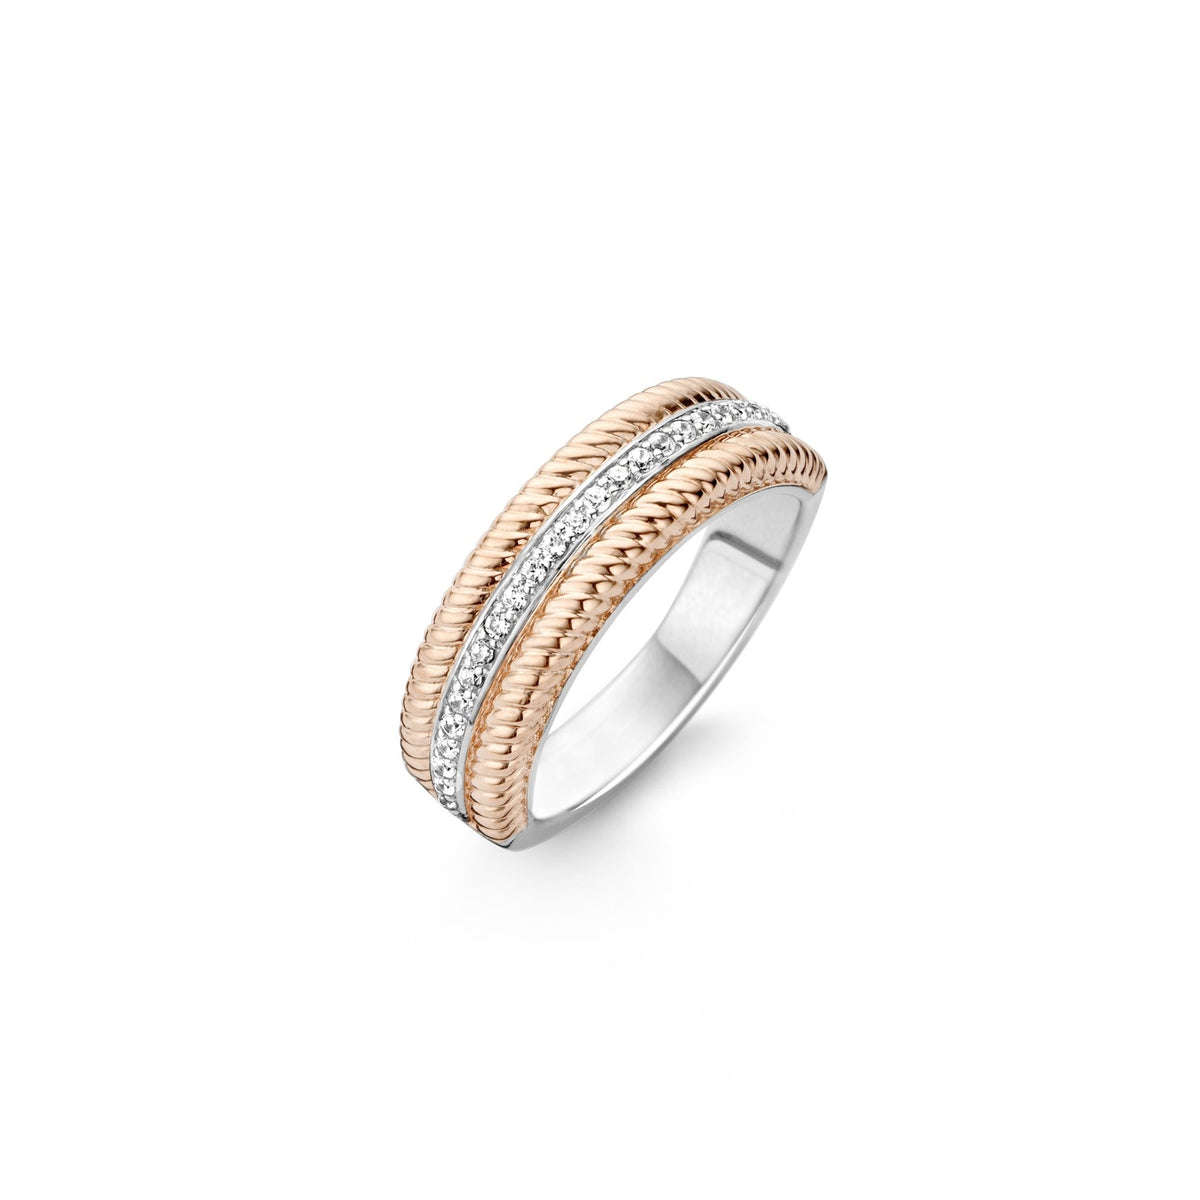 TI SENTO Sterling Silver Ring with Cubic Zirconia and Rose Tone Edges